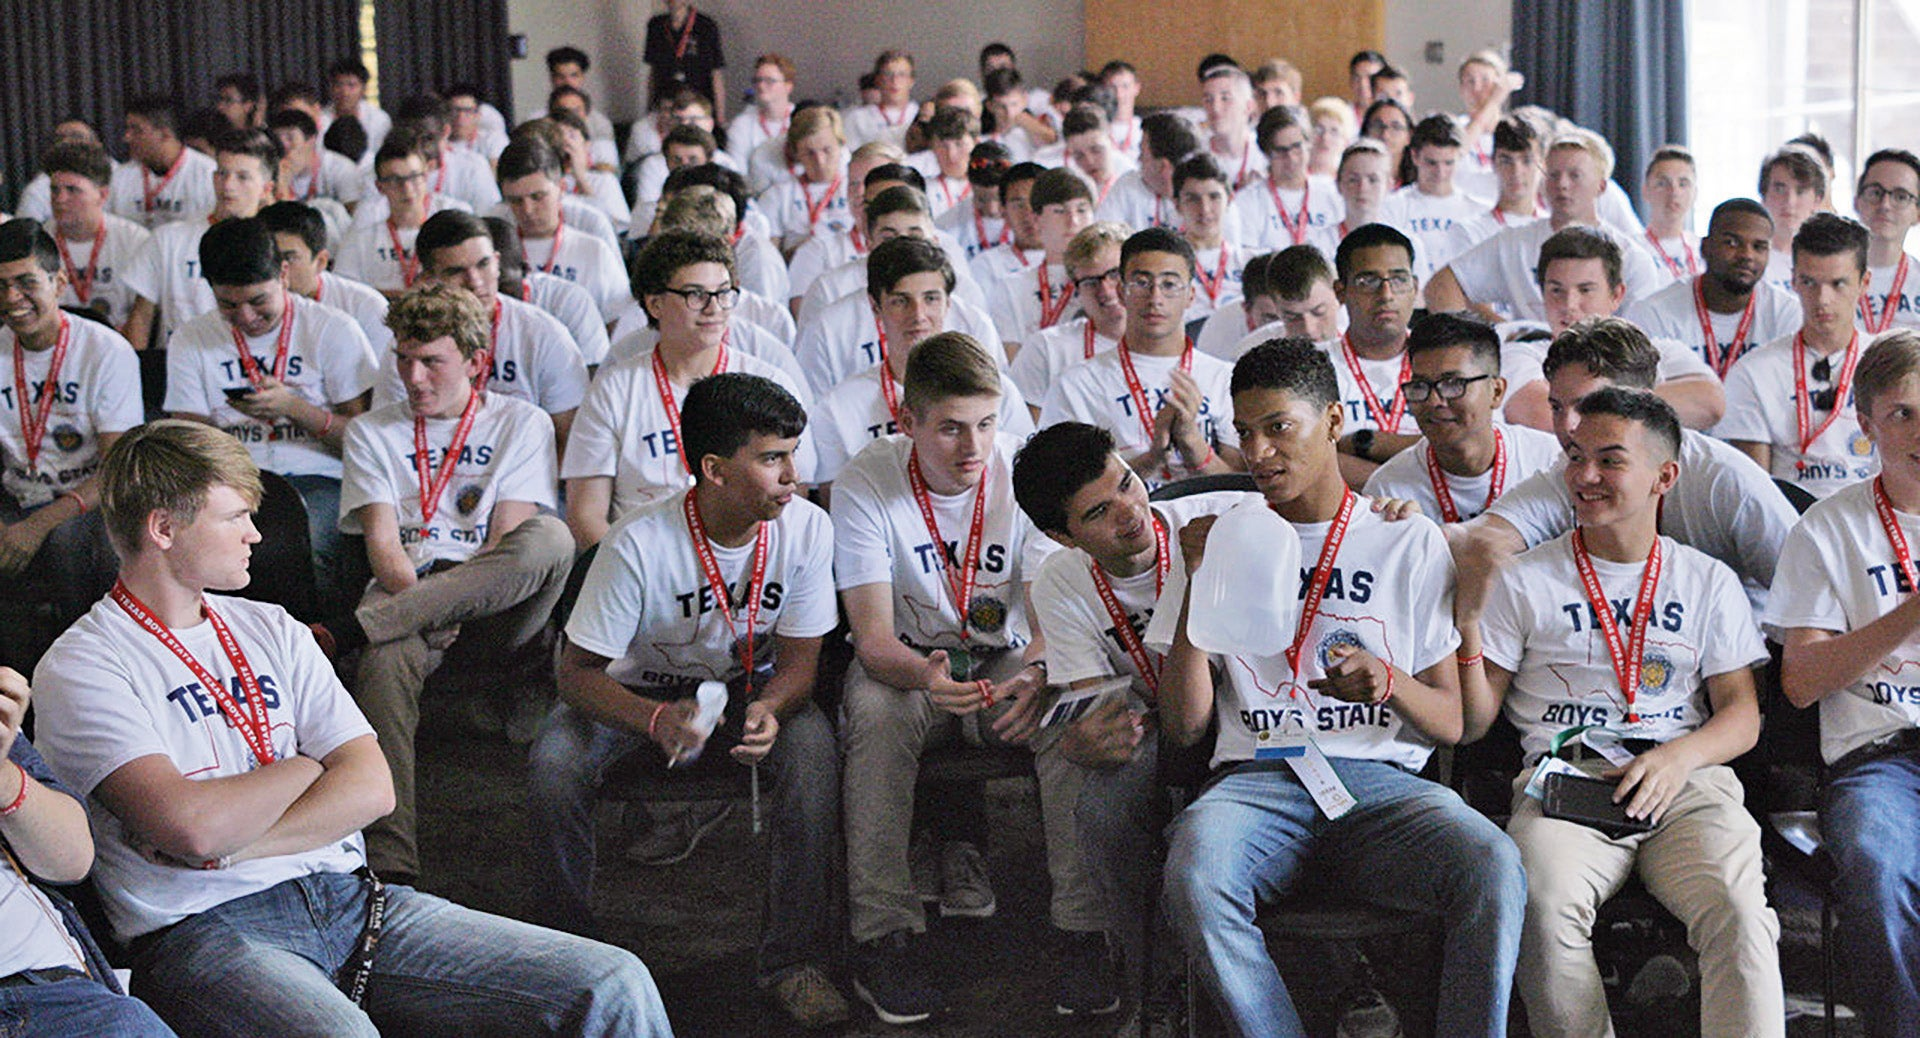 Boys State reveals a microcosm of modern political theatre